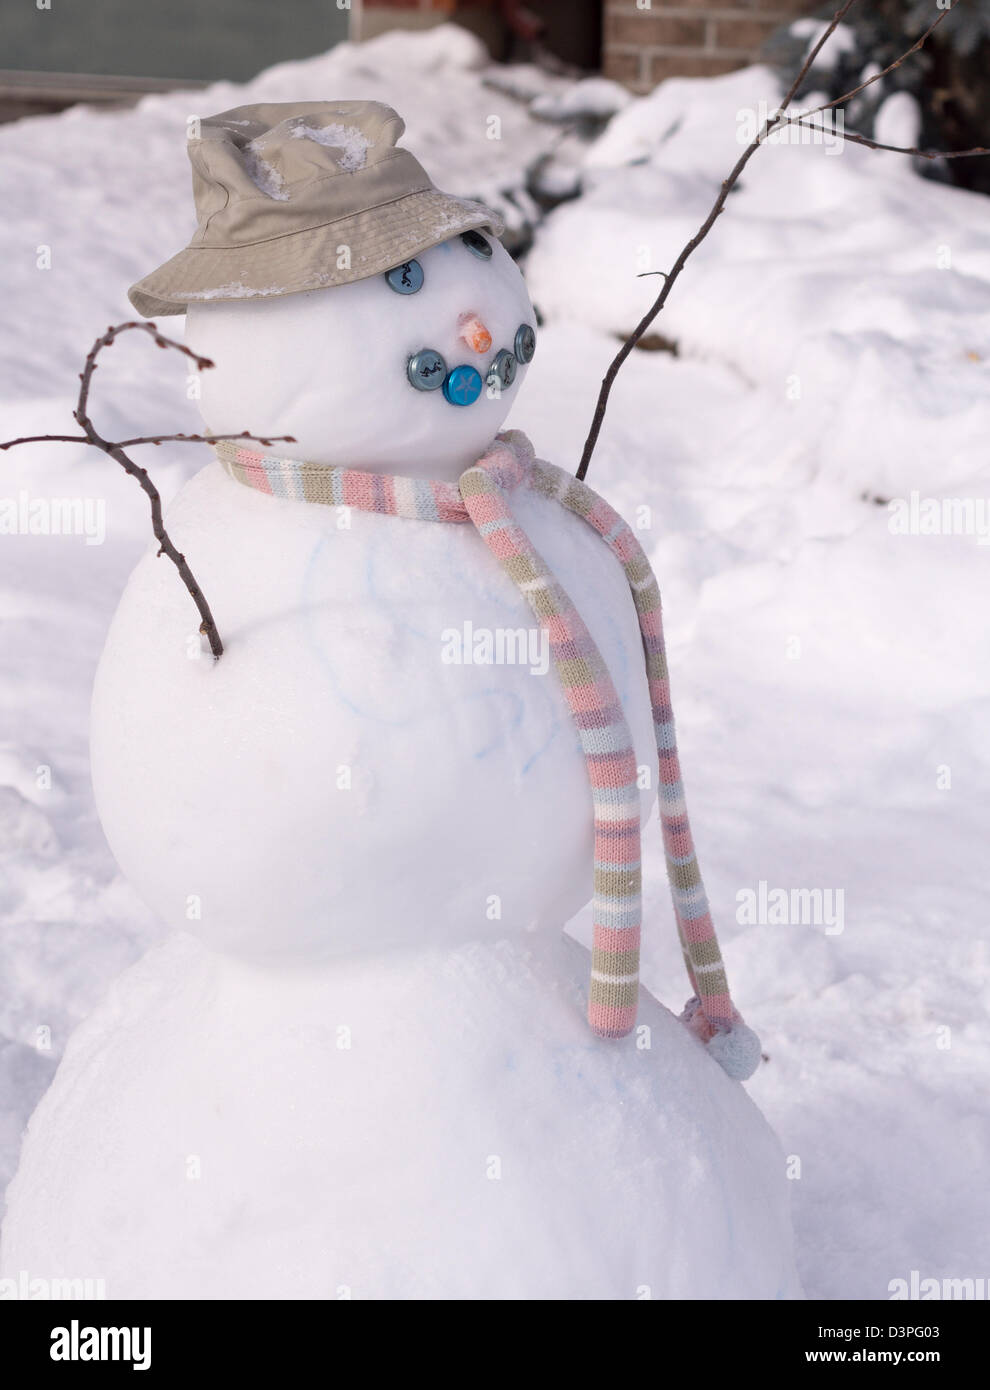 Well dressed snowman. A snowman with twig arms, a carrot nose, pastel scarf and bottle cap eyes. - Stock Image